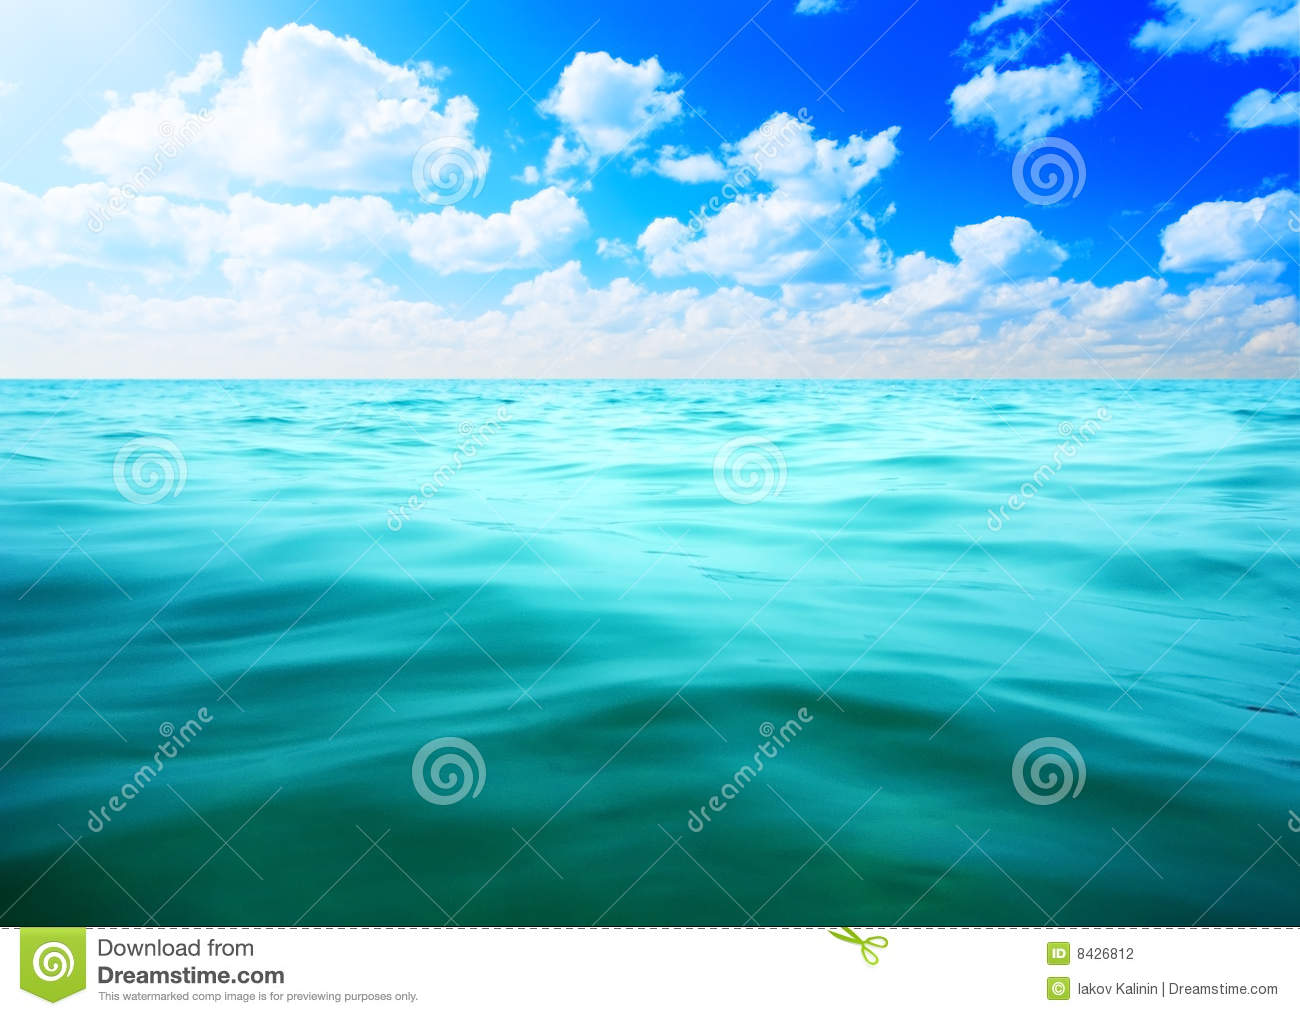 Oceans water and blue sky